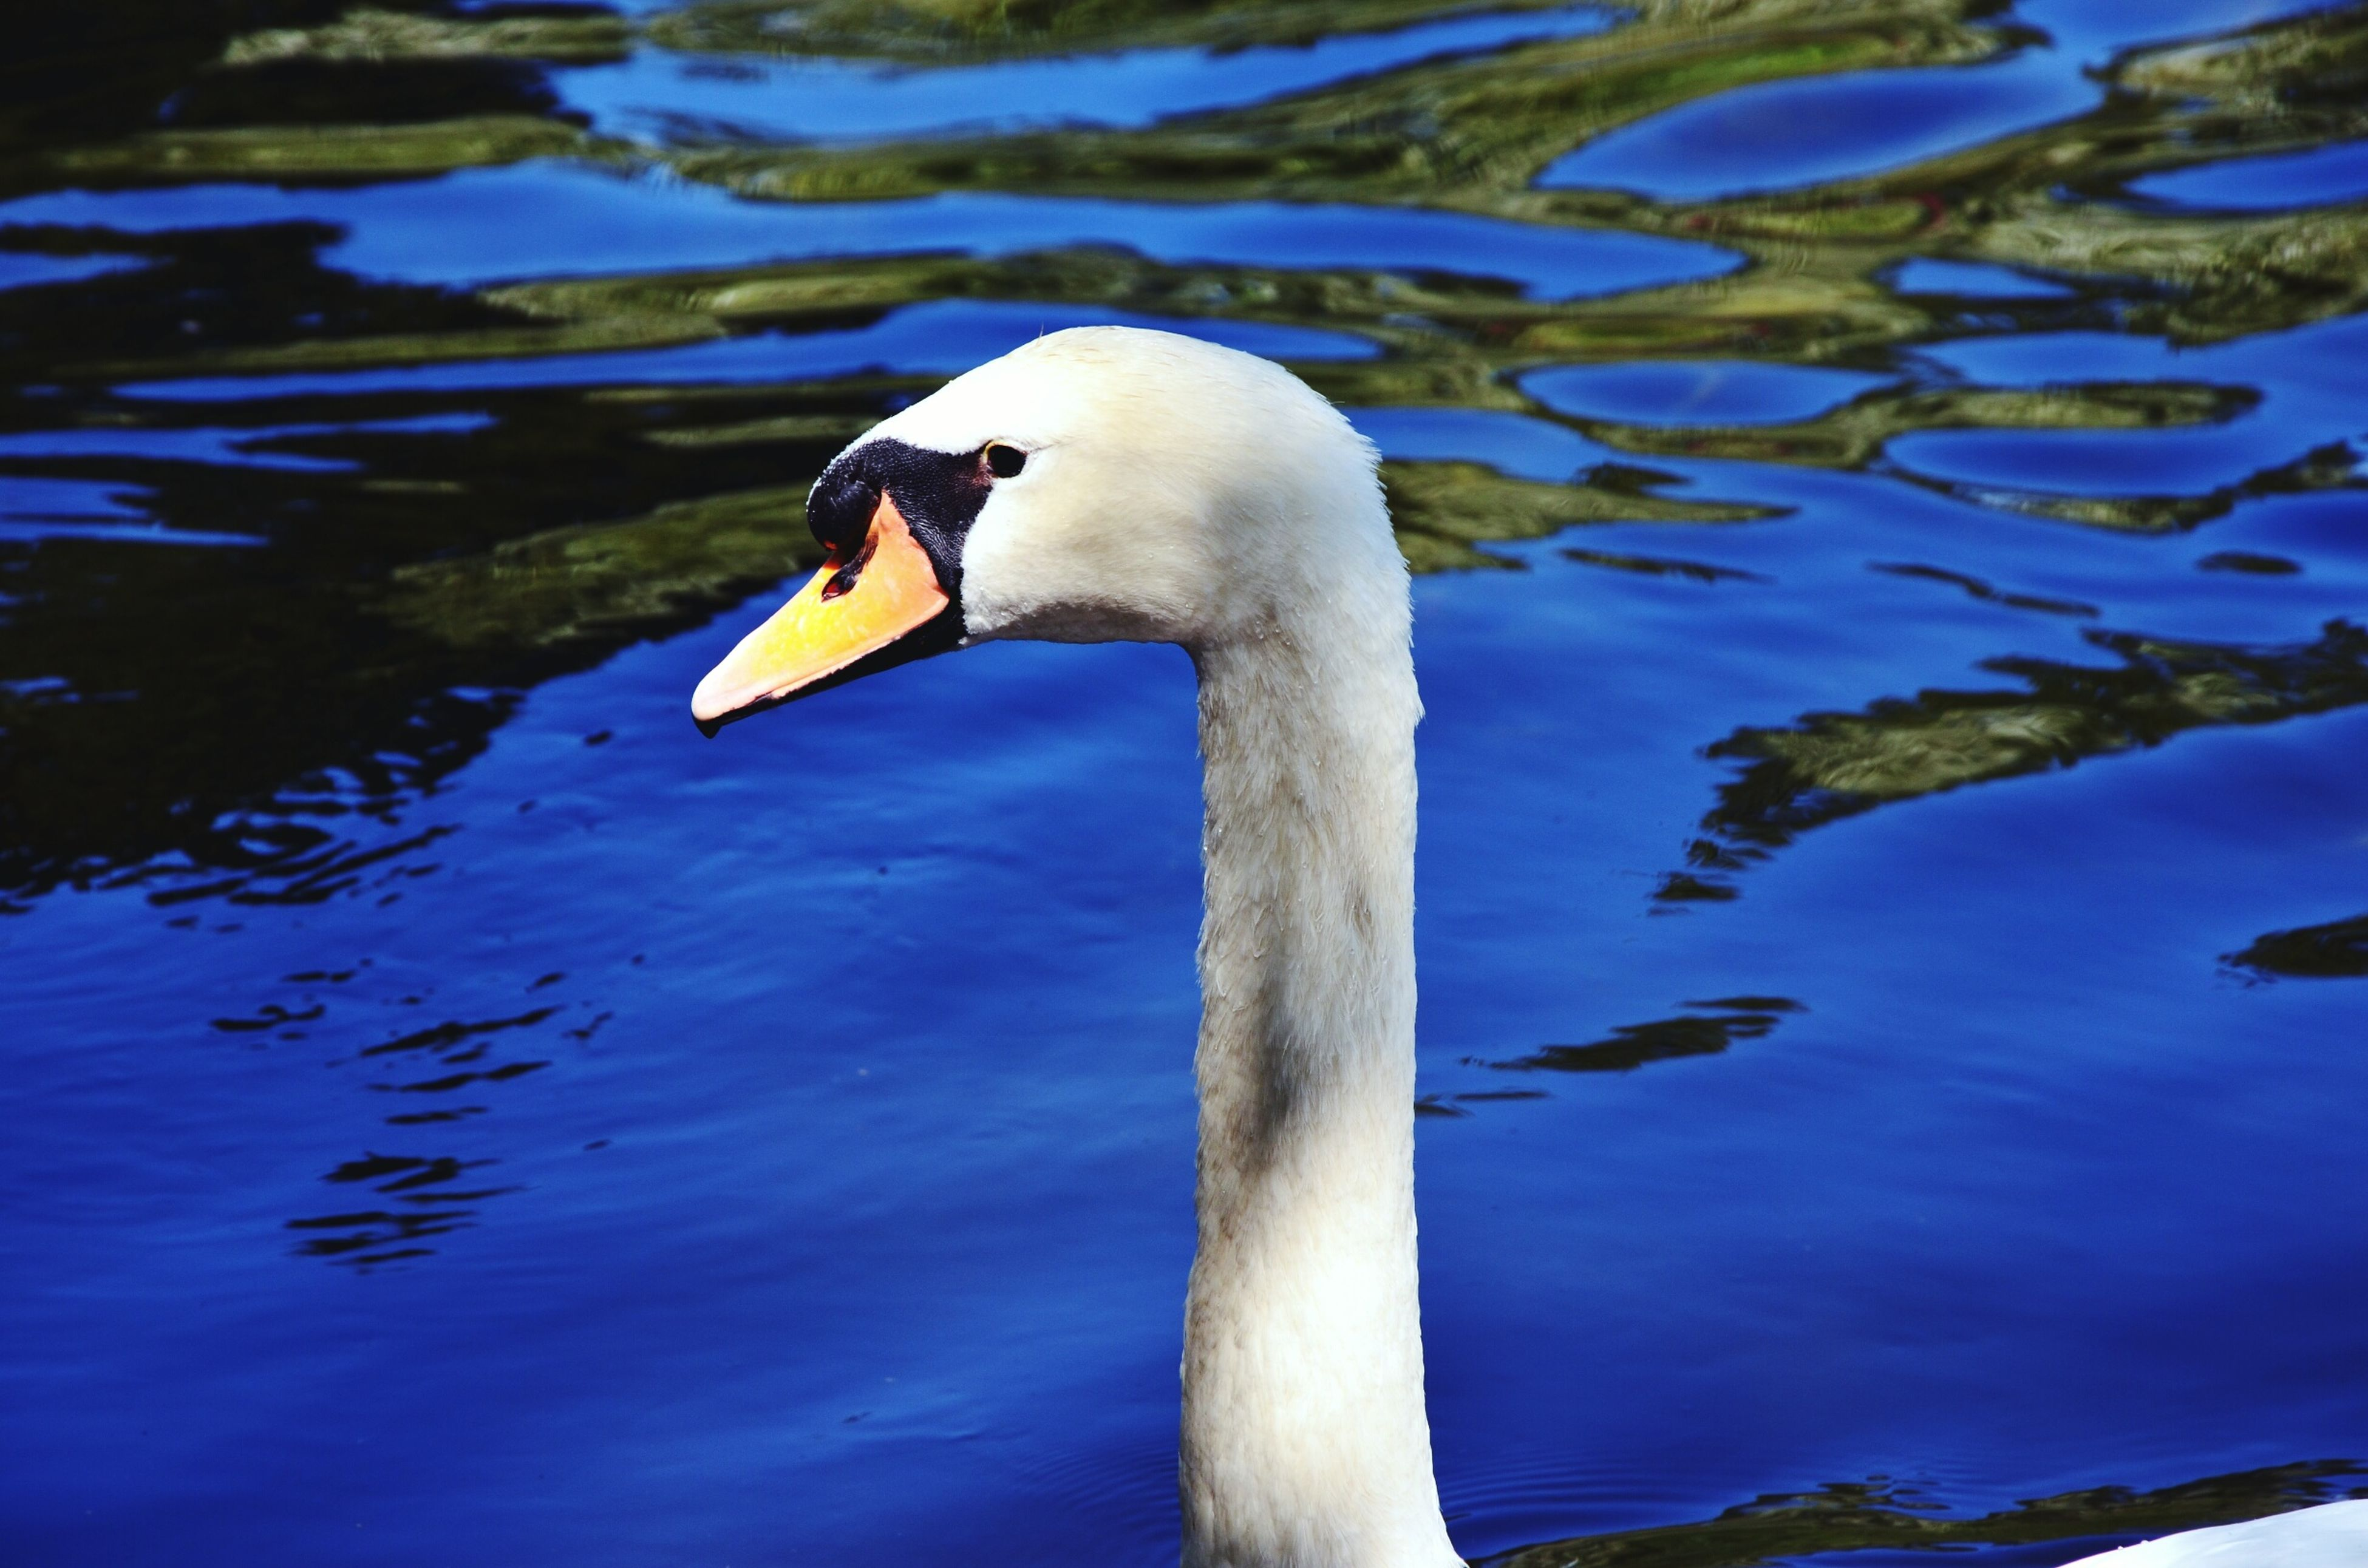 bird, animal themes, animals in the wild, wildlife, one animal, beak, water, lake, side view, white color, blue, close-up, swan, rippled, swimming, nature, outdoors, day, animal head, water bird, avian, tranquility, water surface, zoology, mountain, beauty in nature, scenics